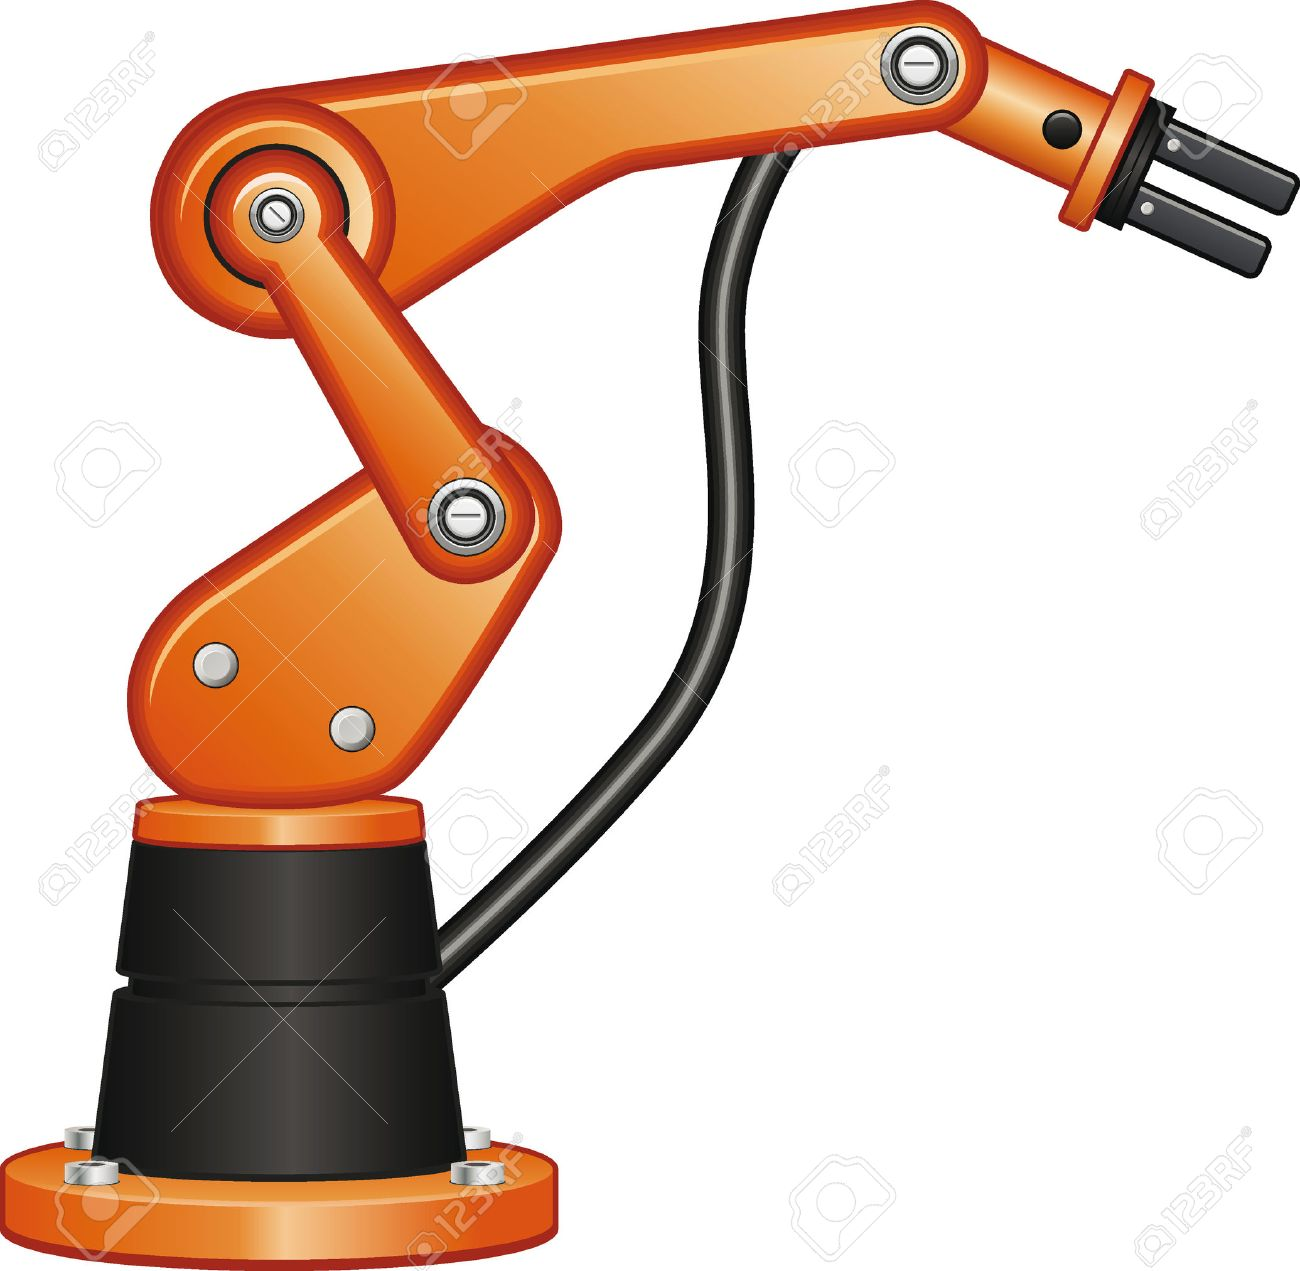 picture download Robot arm clipart. Station .